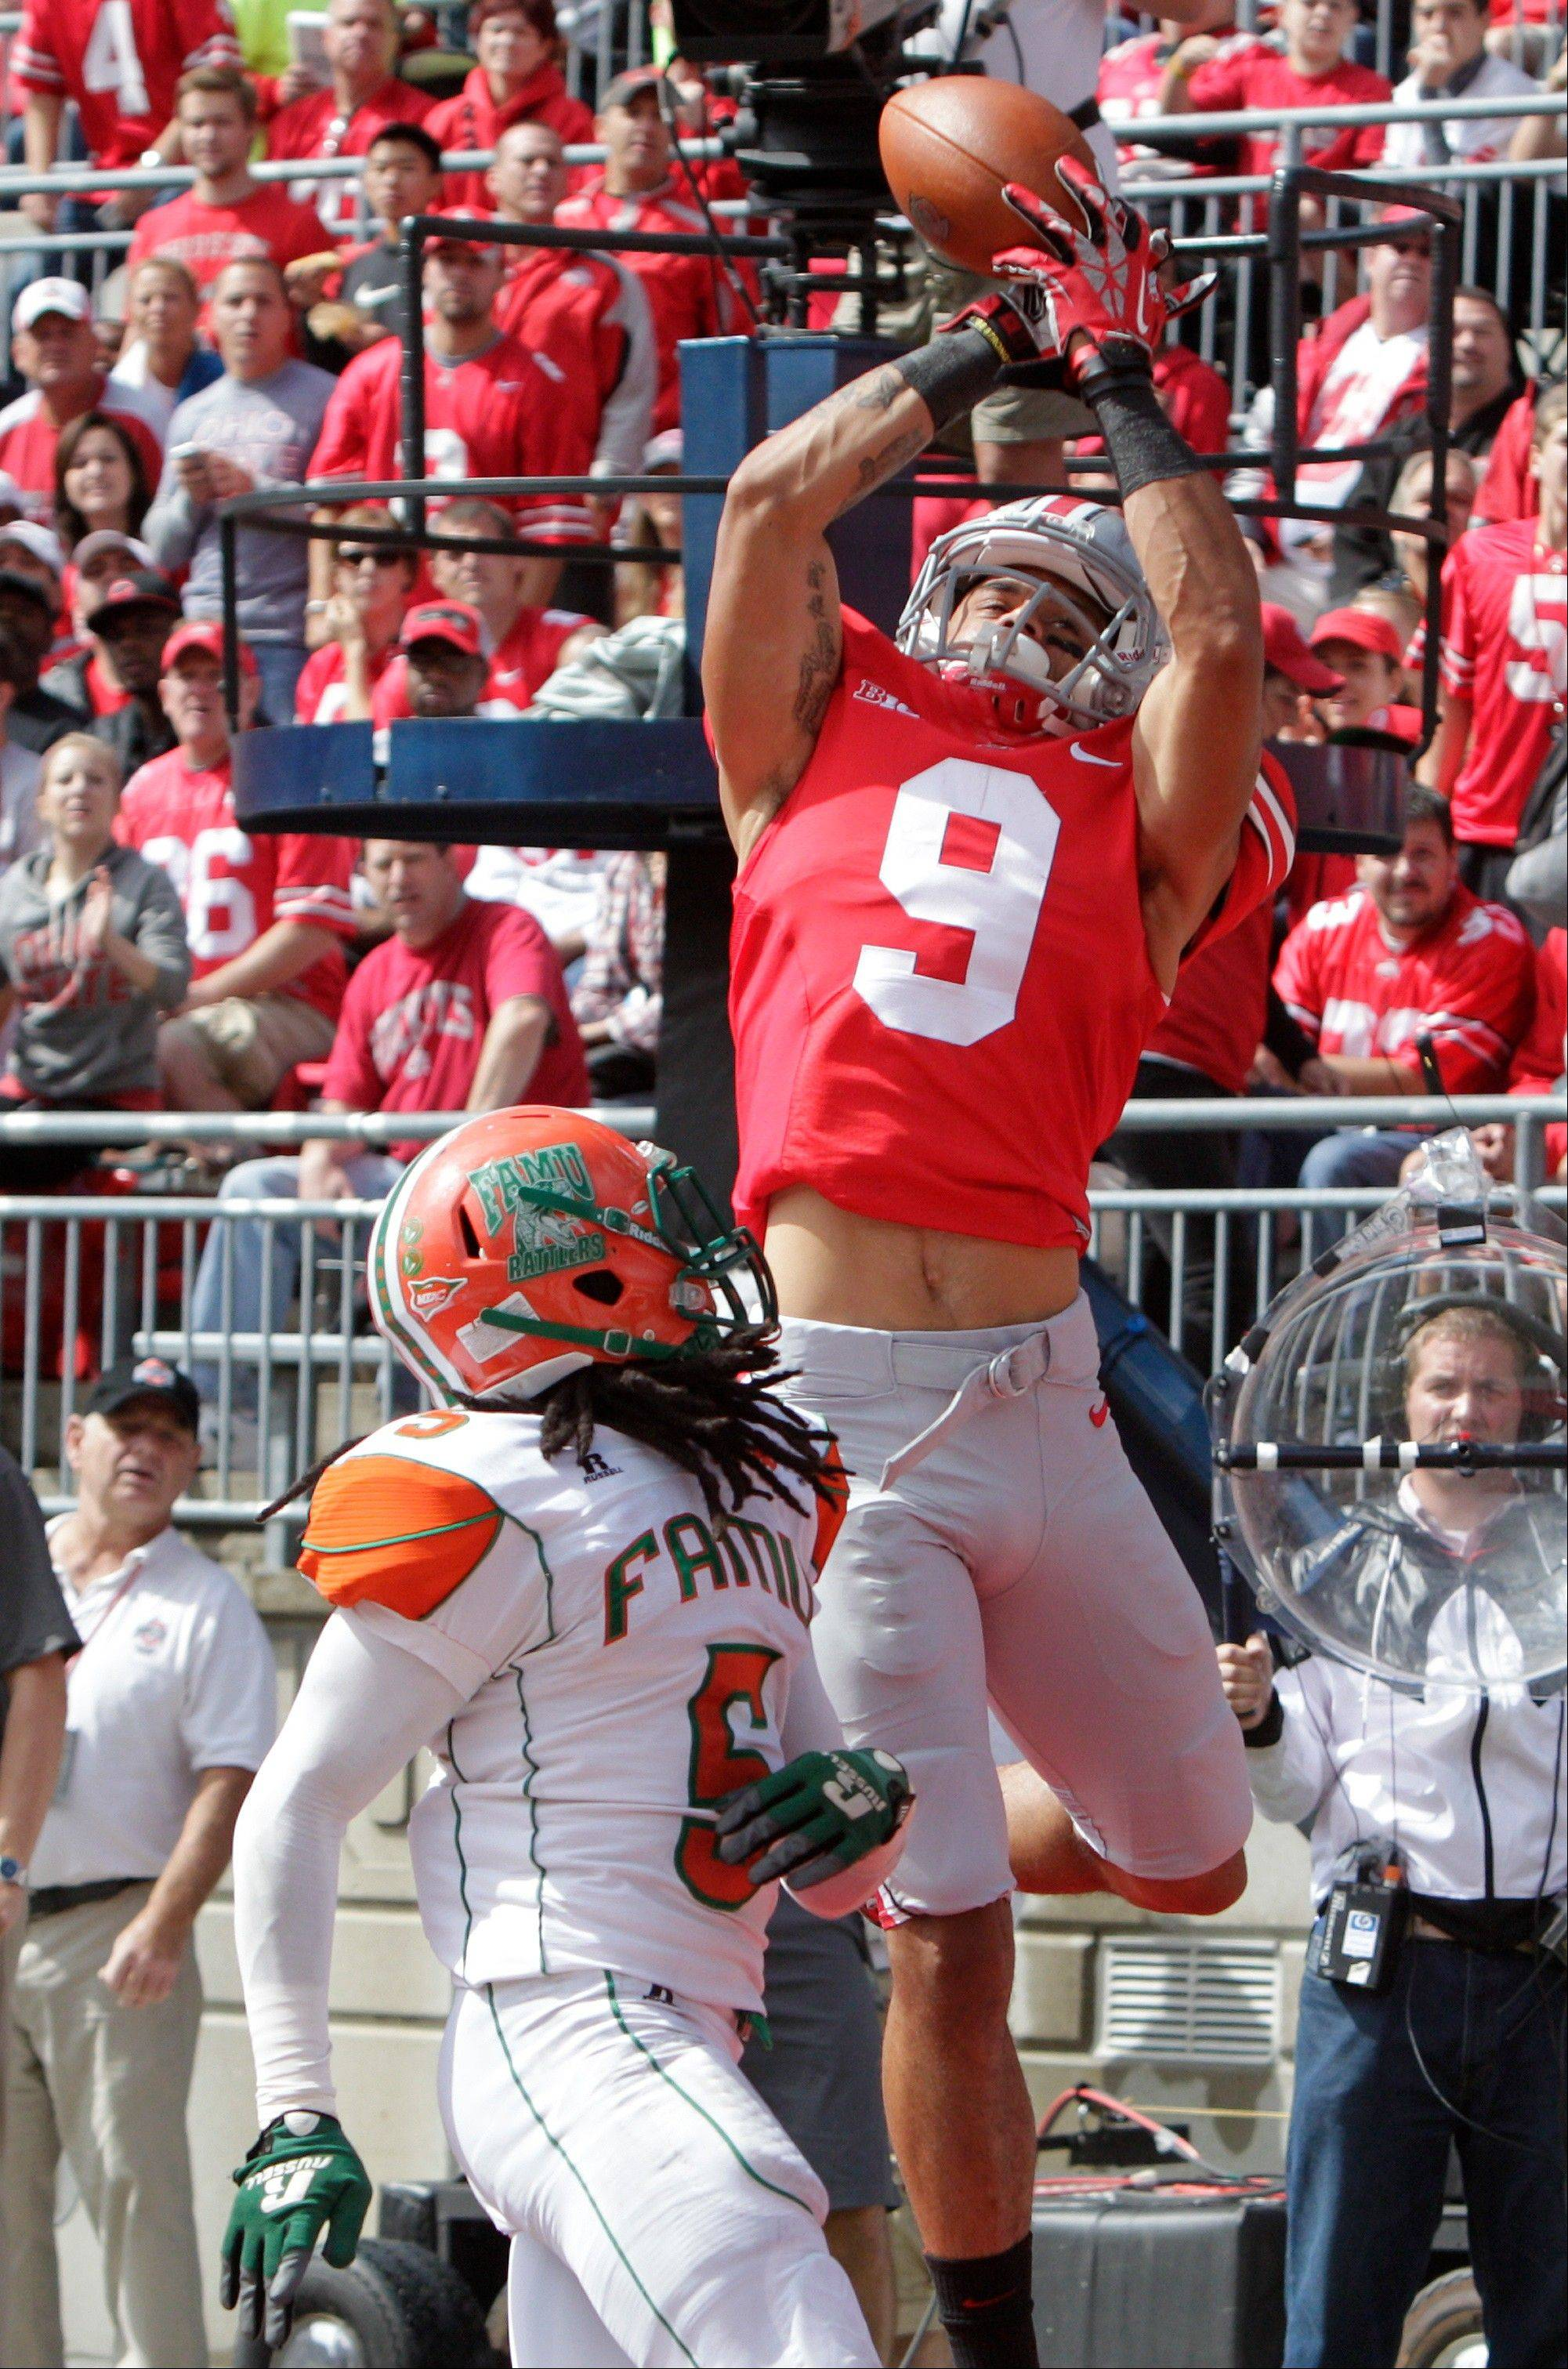 Ohio State wide receiver Devin Smith, top, catches a touchdown pass over Florida A&M cornerback Patrick Aiken during the first quarter of an NCAA college football game Saturday, Sept. 21, 2013, in Columbus, Ohio. (AP Photo/Jay LaPrete)